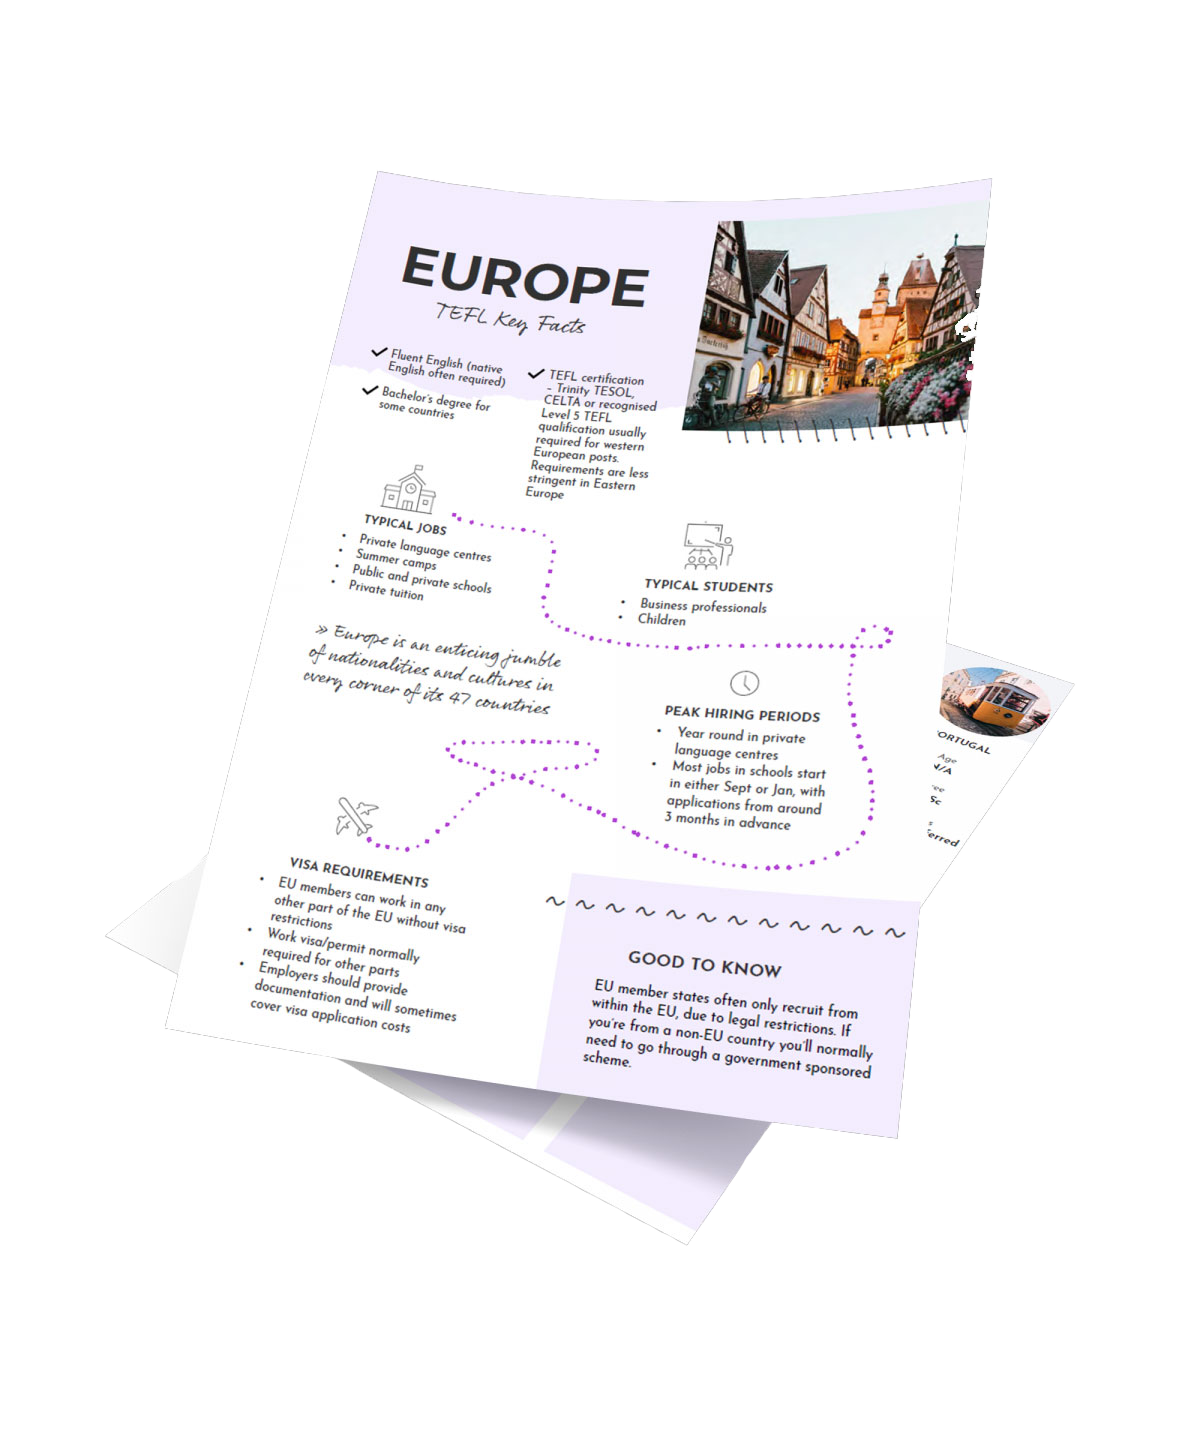 Europe guide